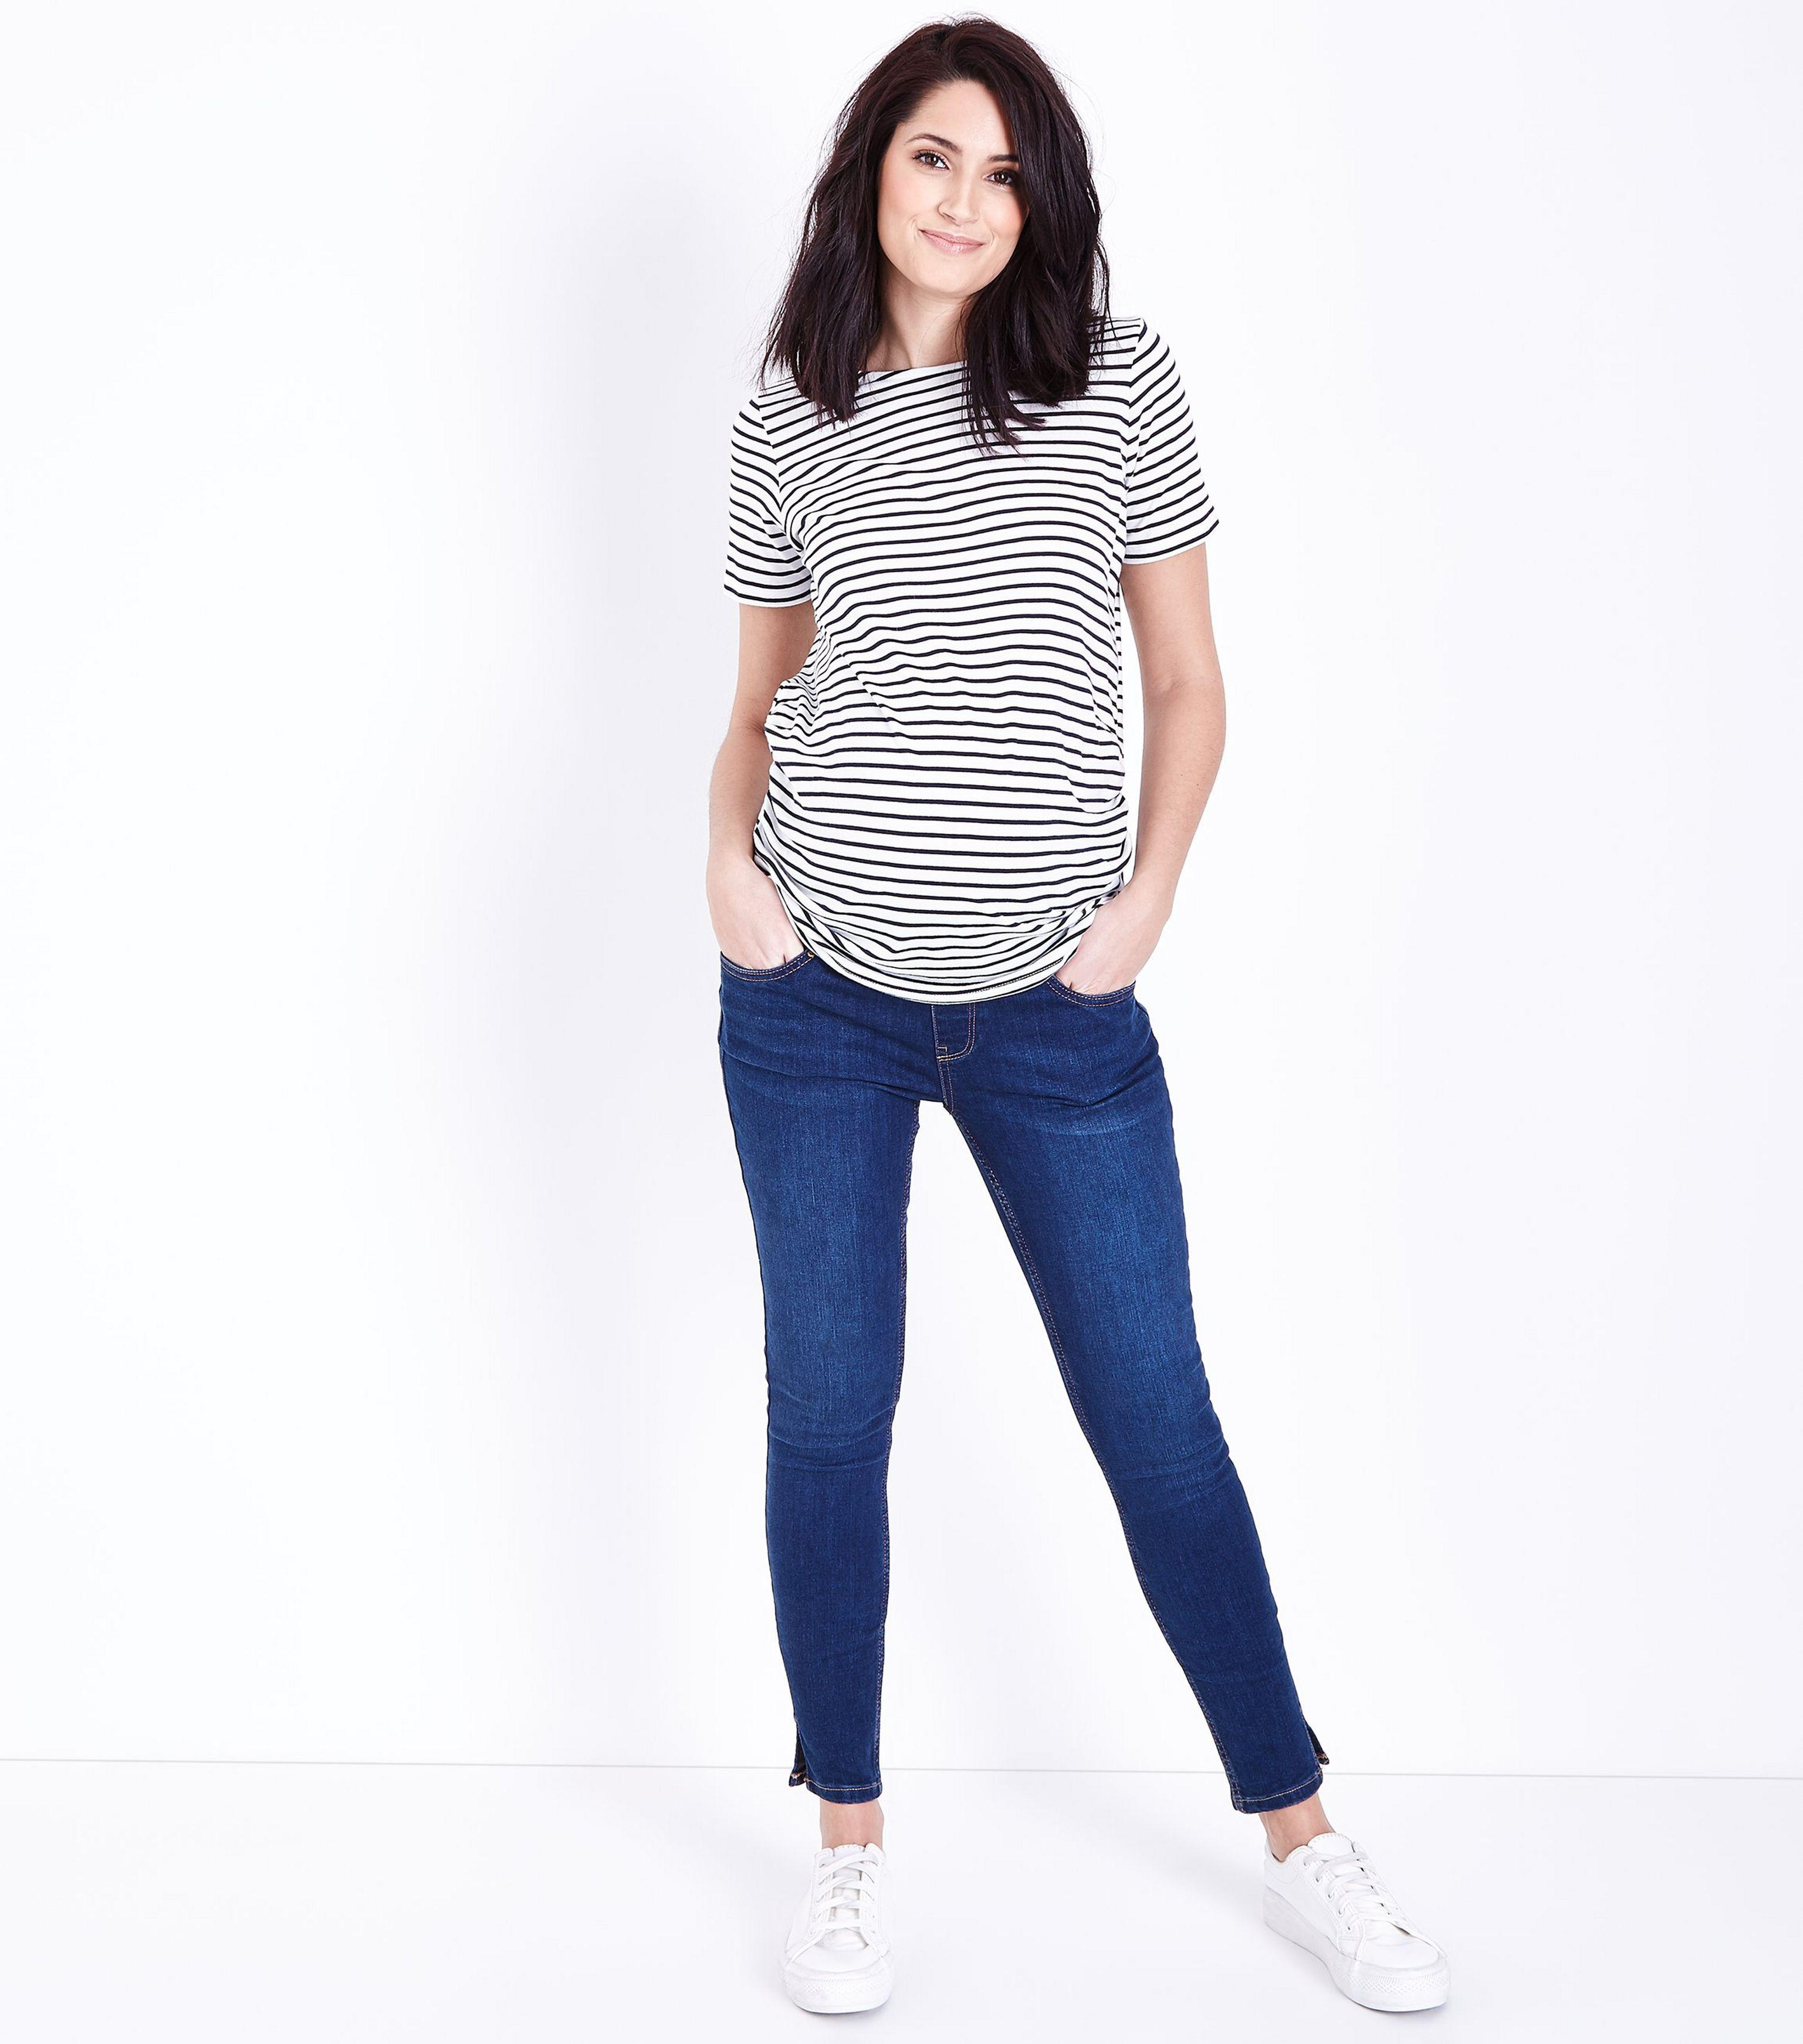 1257b040fcc73 New Look Maternity Blue Rinse Under Bump Skinny Jeans in Blue - Lyst